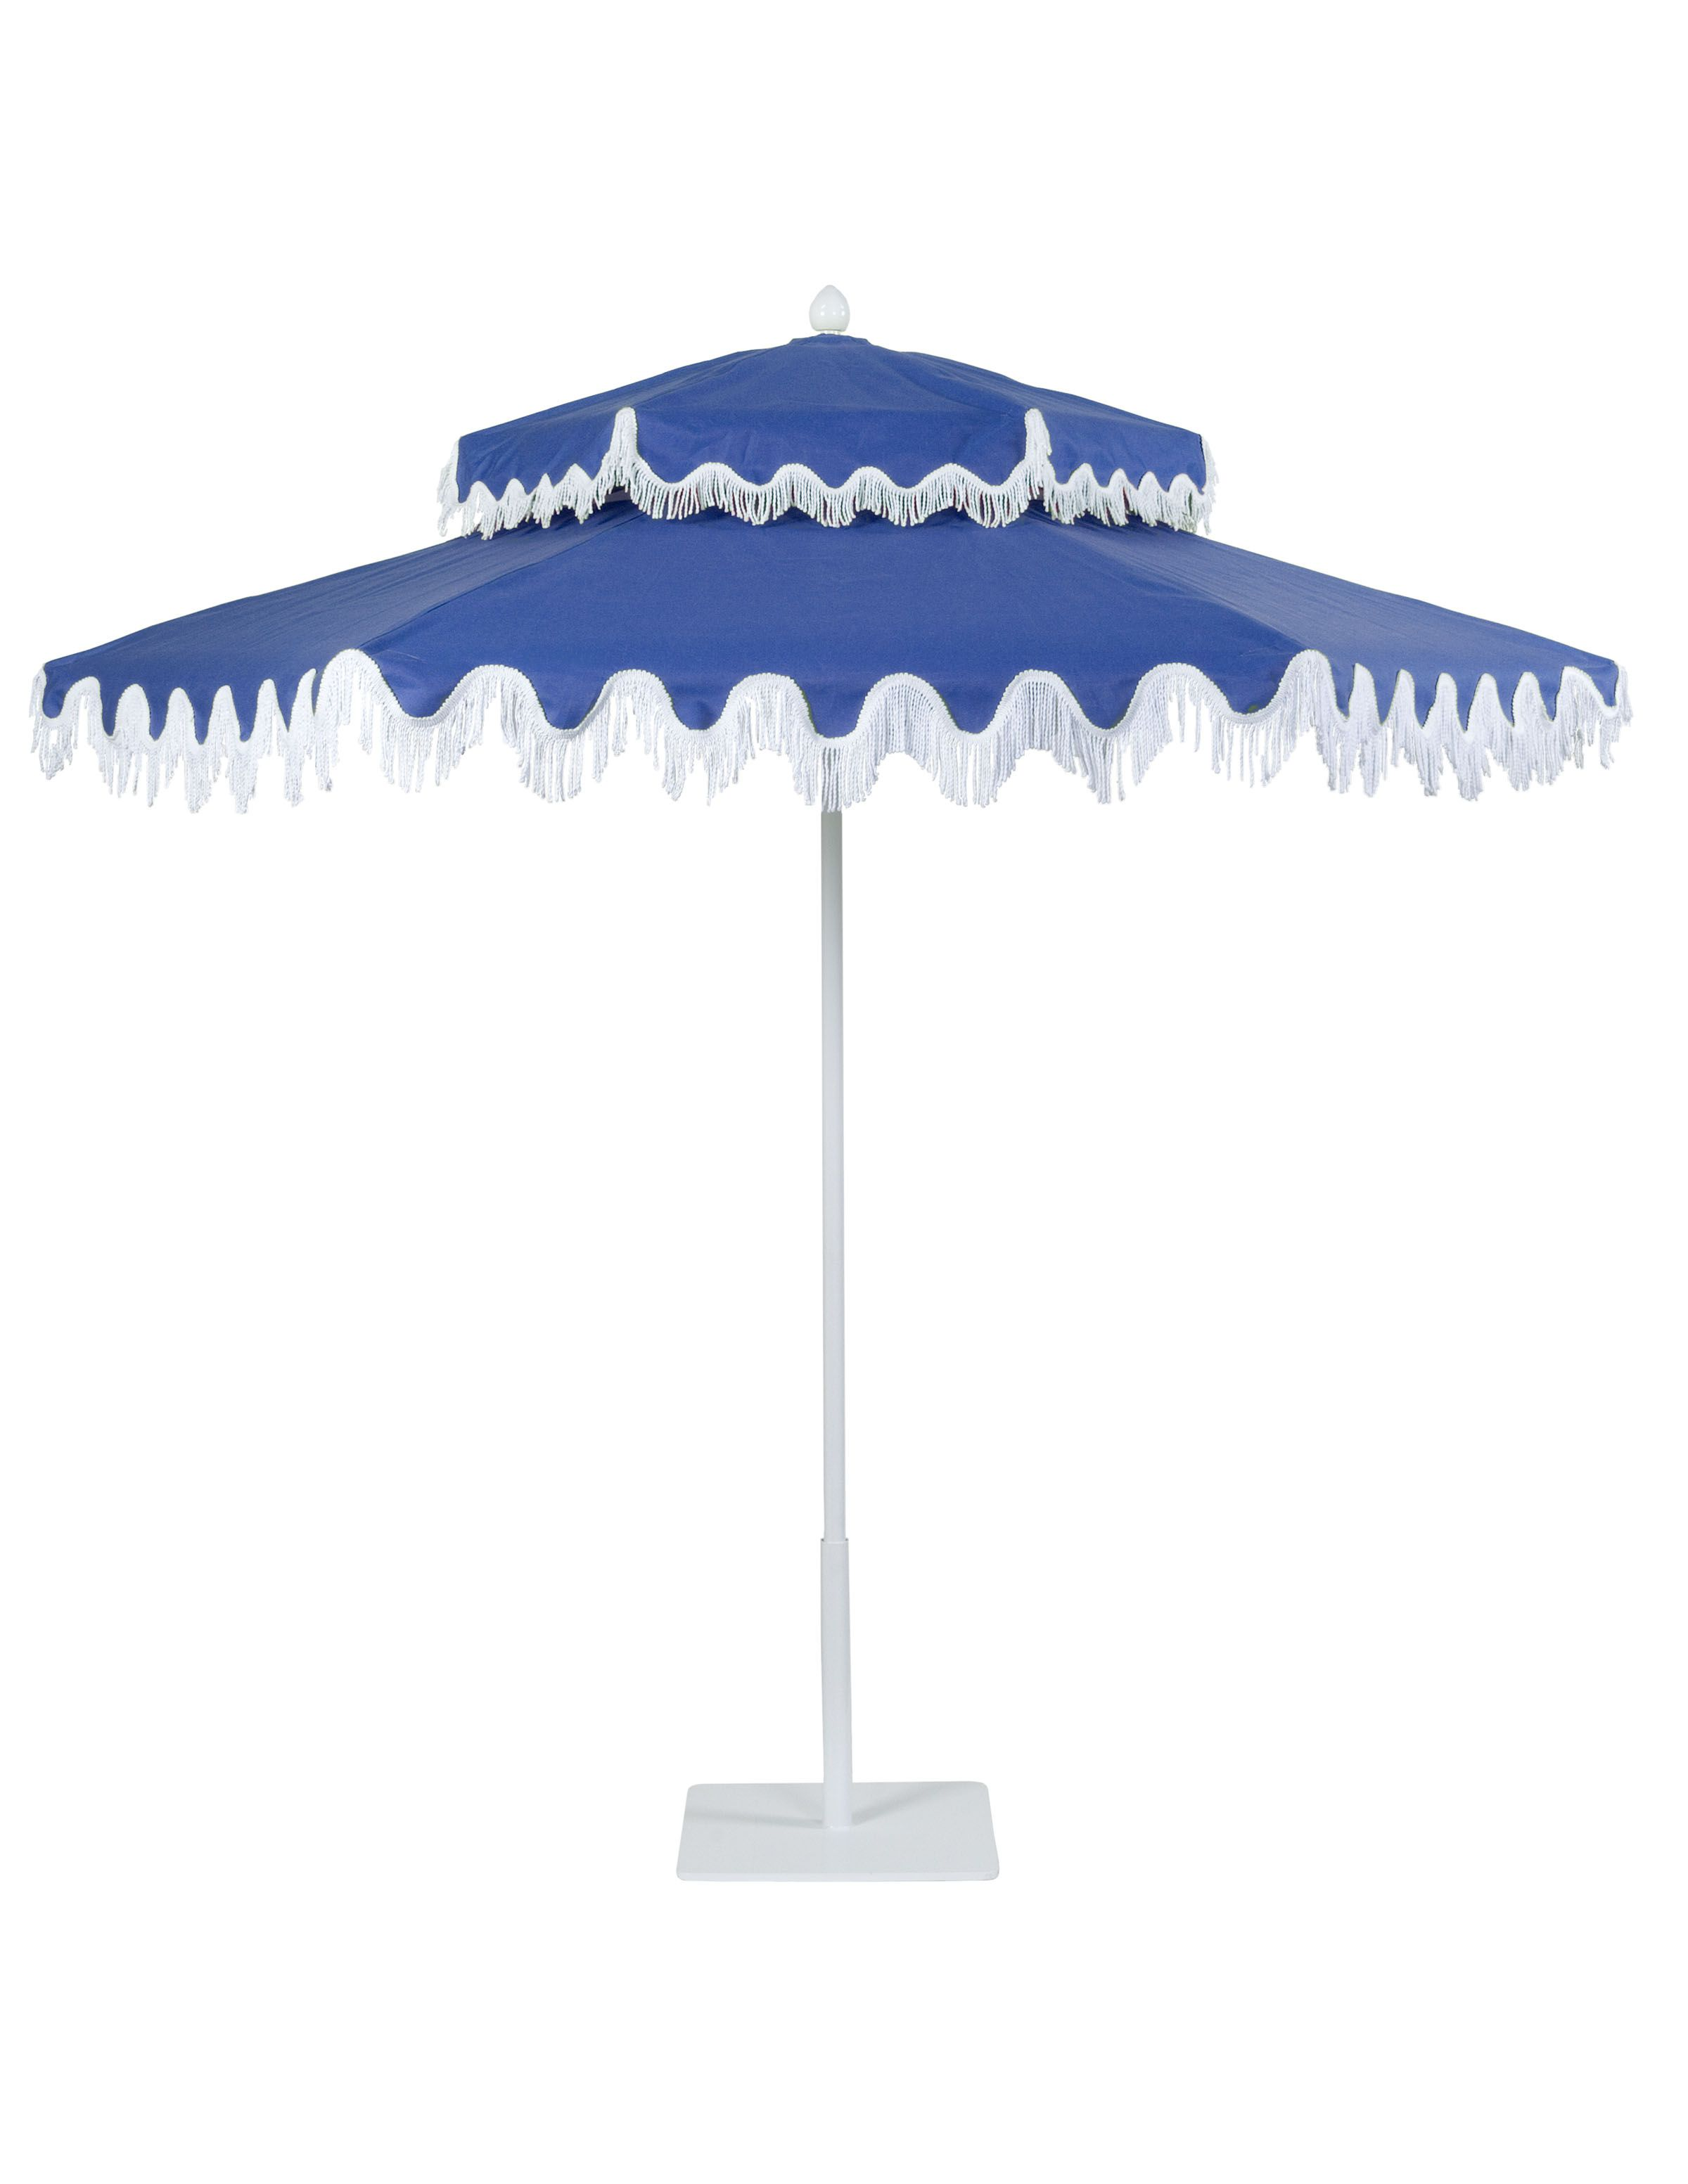 Double Decker aluminum umbrella with White frame in Anchor